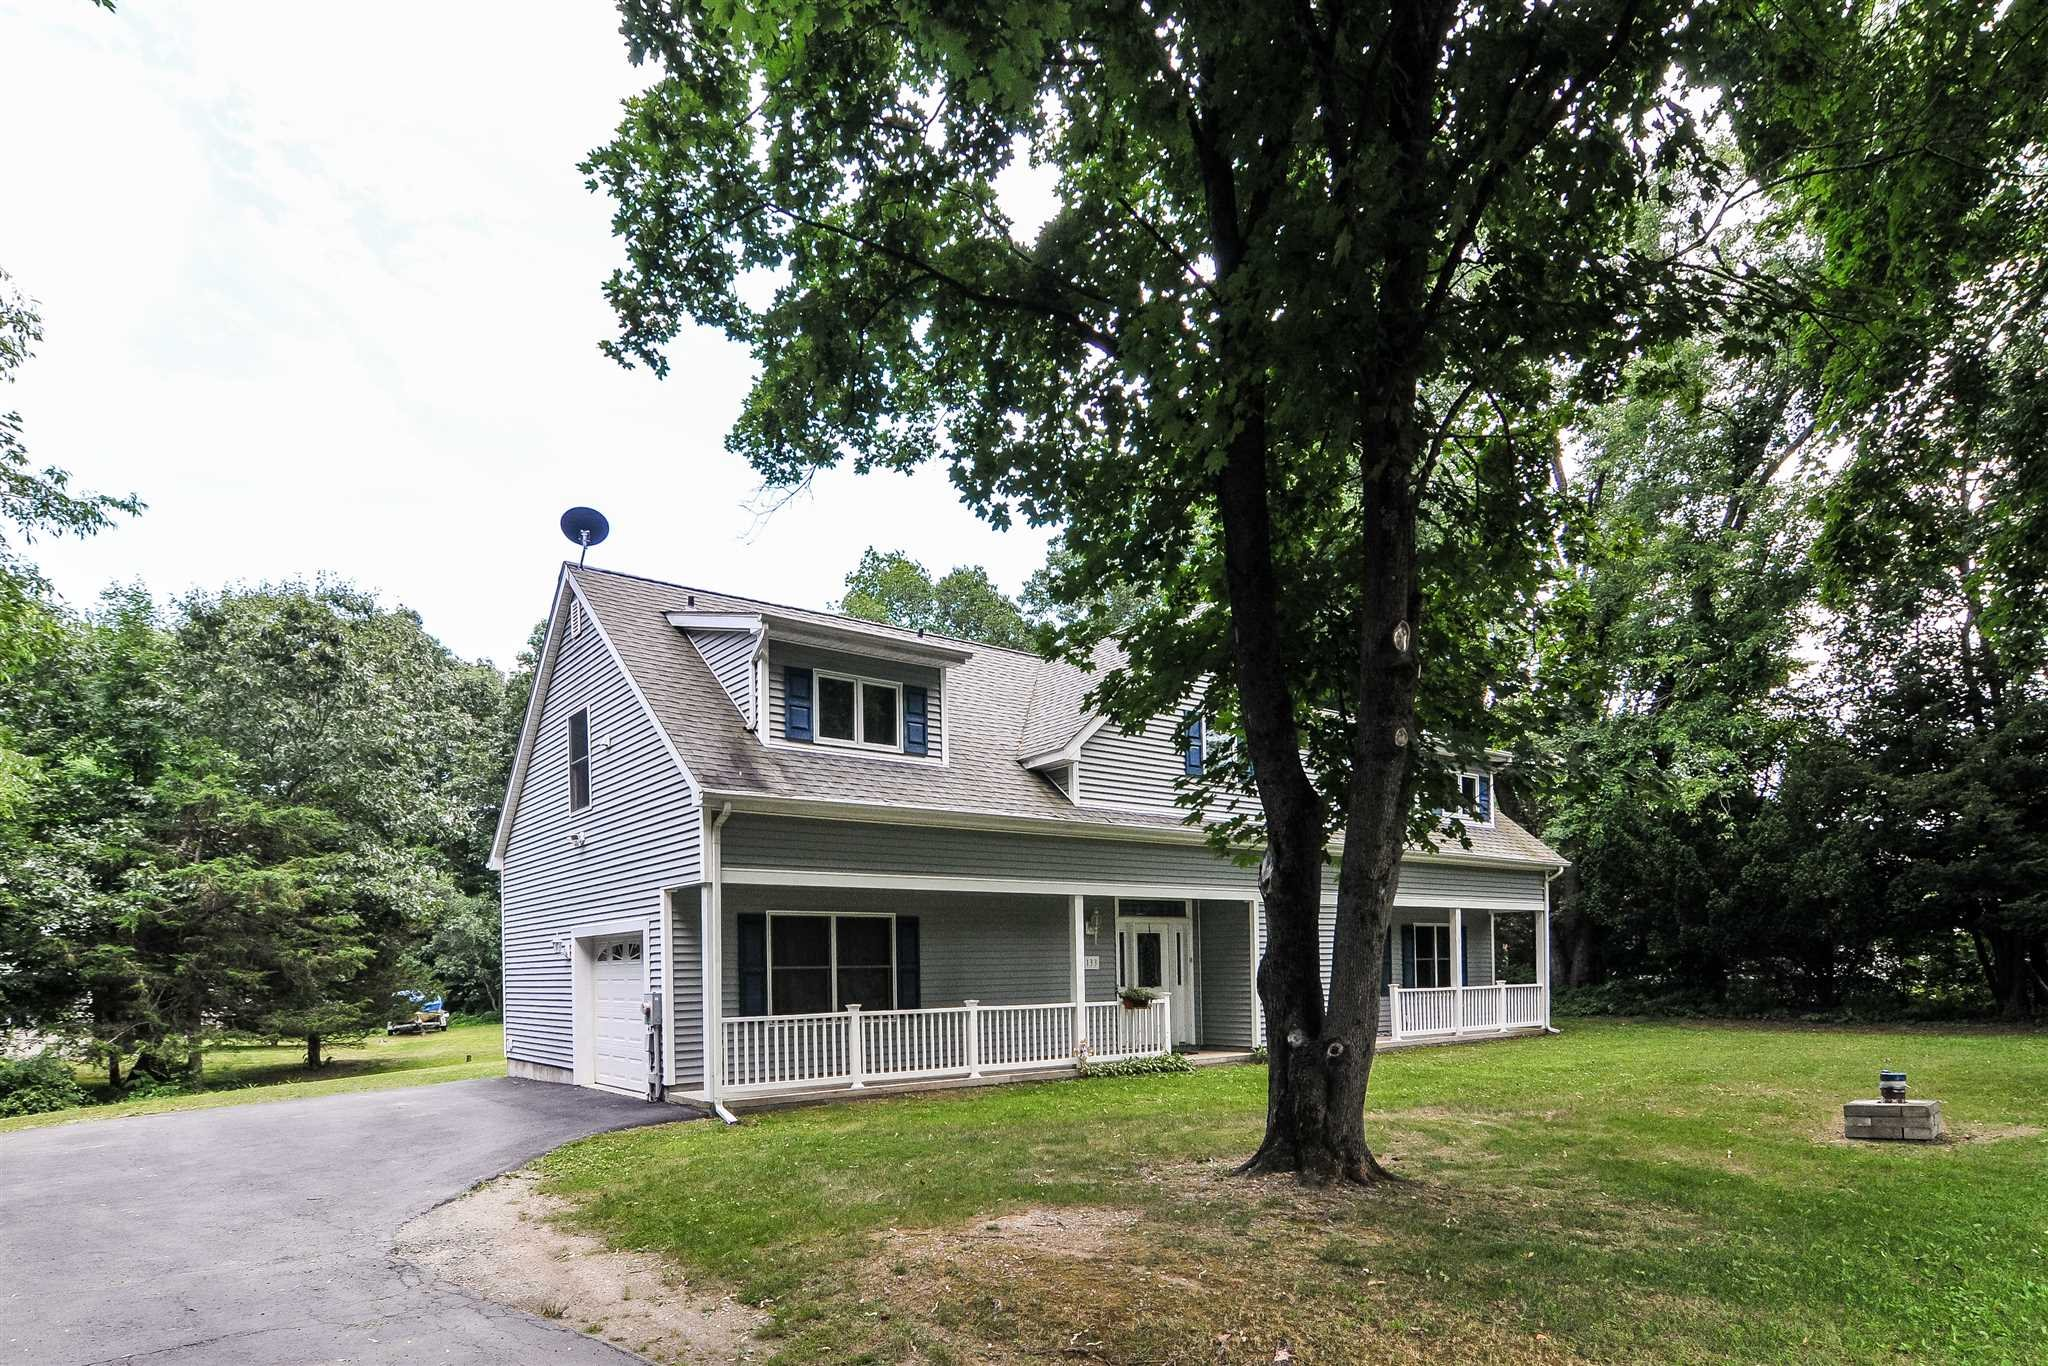 Single Family Home for Sale at 133 MARTIN Road 133 MARTIN Road East Fishkill, New York 12533 United States